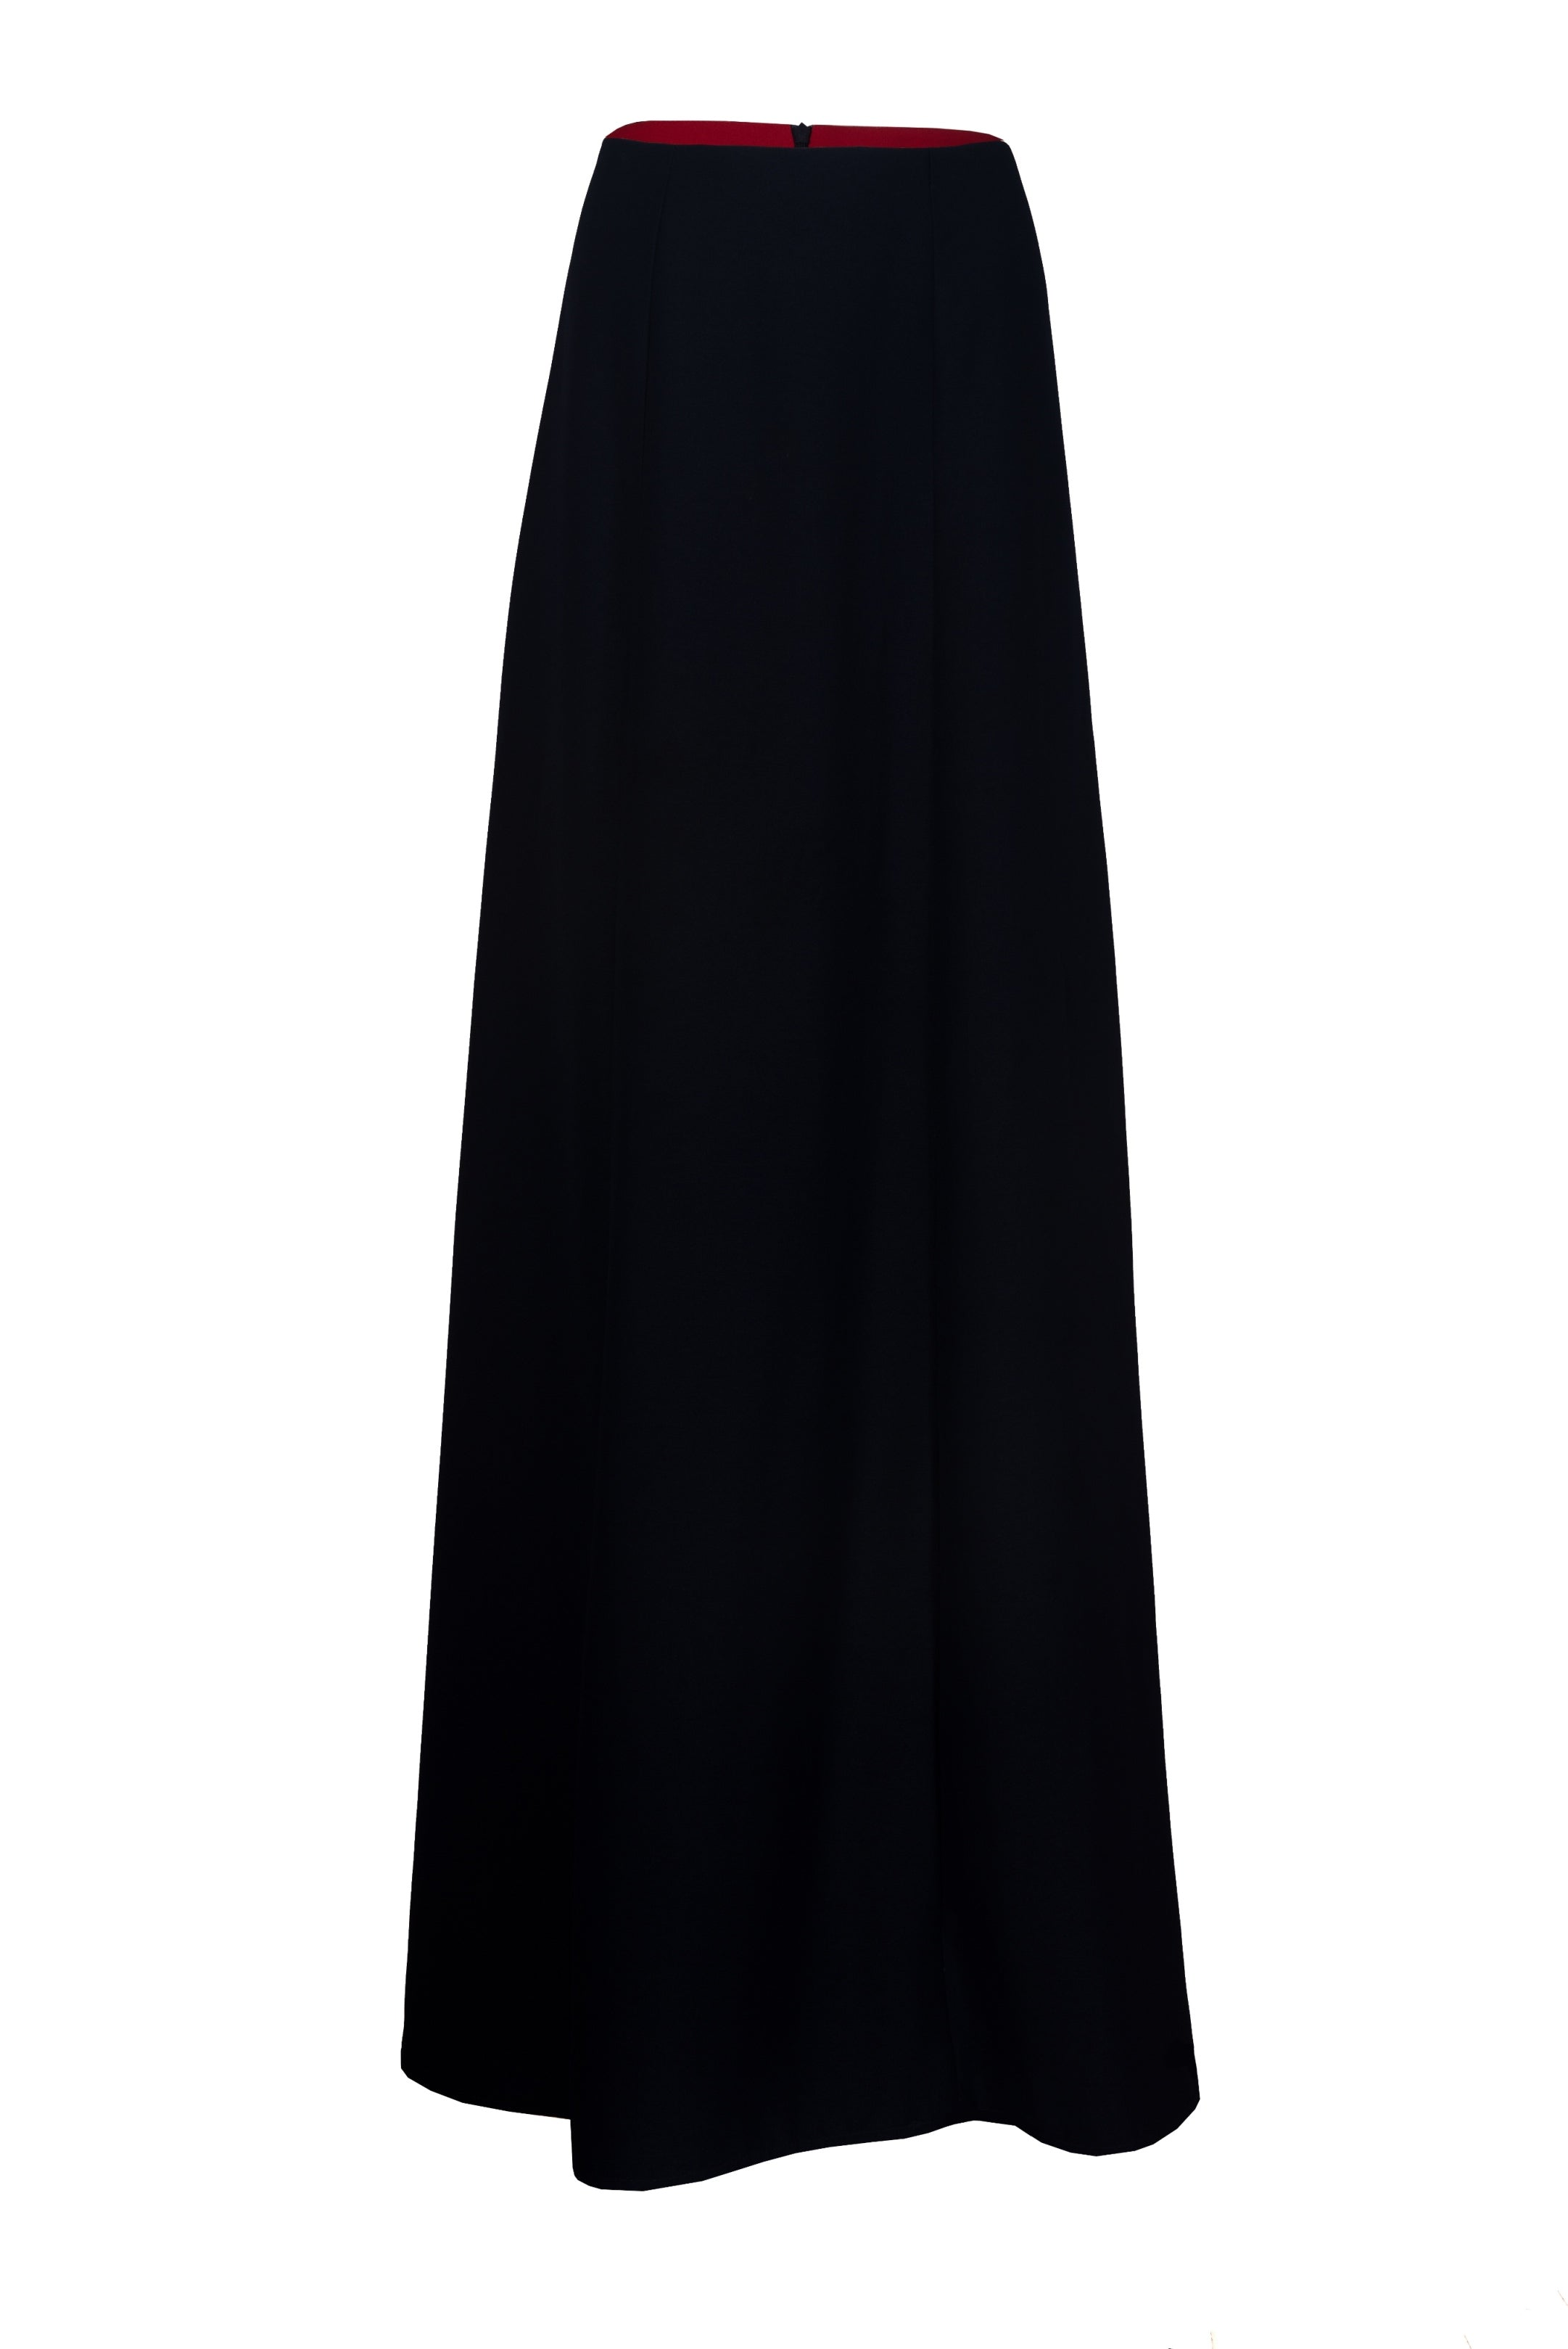 Eugina Maxi Skirt - VeRaf Clothing